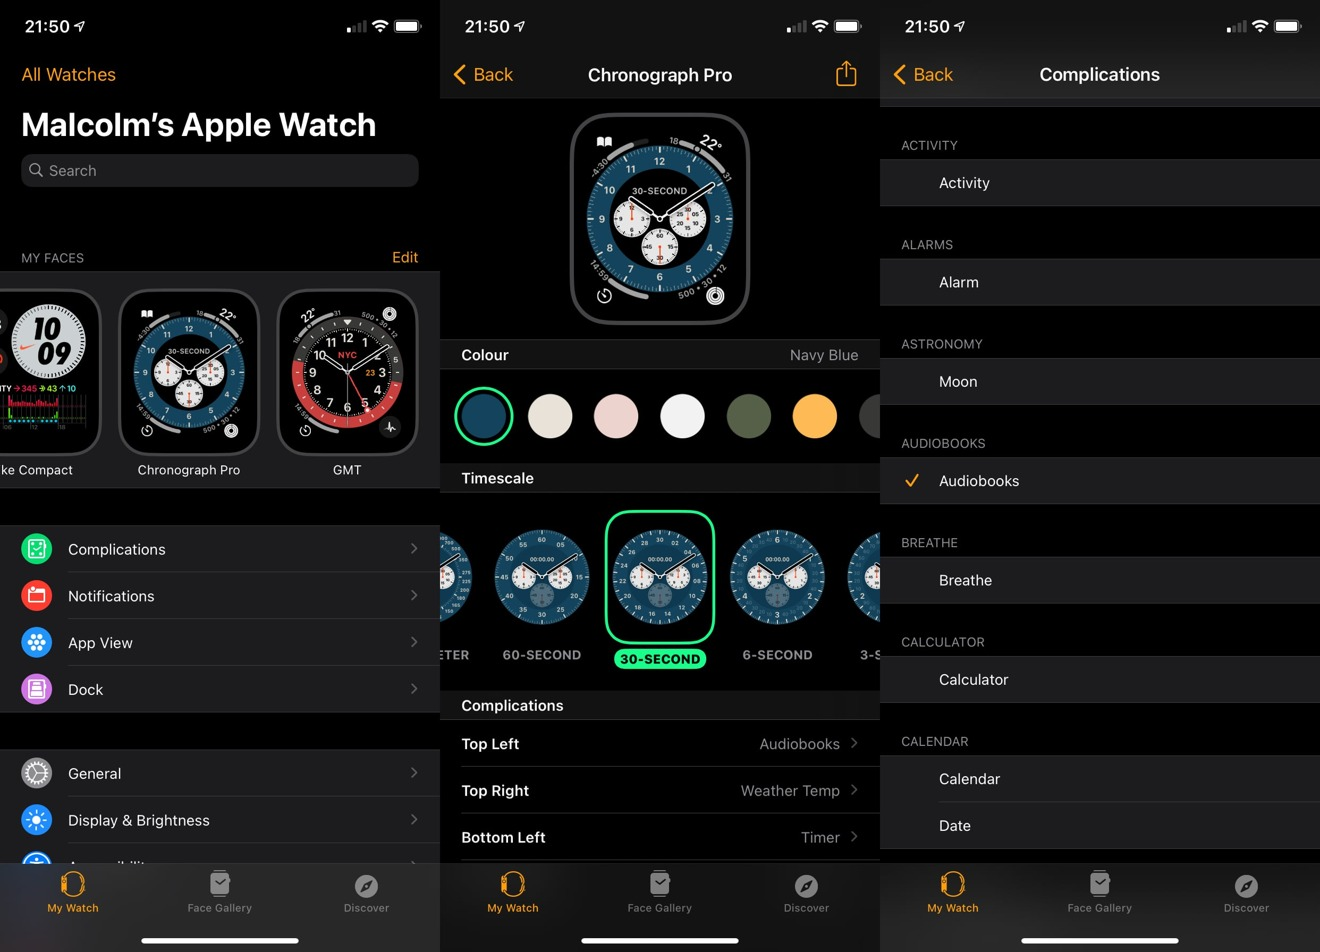 Changing watch face attributes and complications via the iPhone's Watch app.